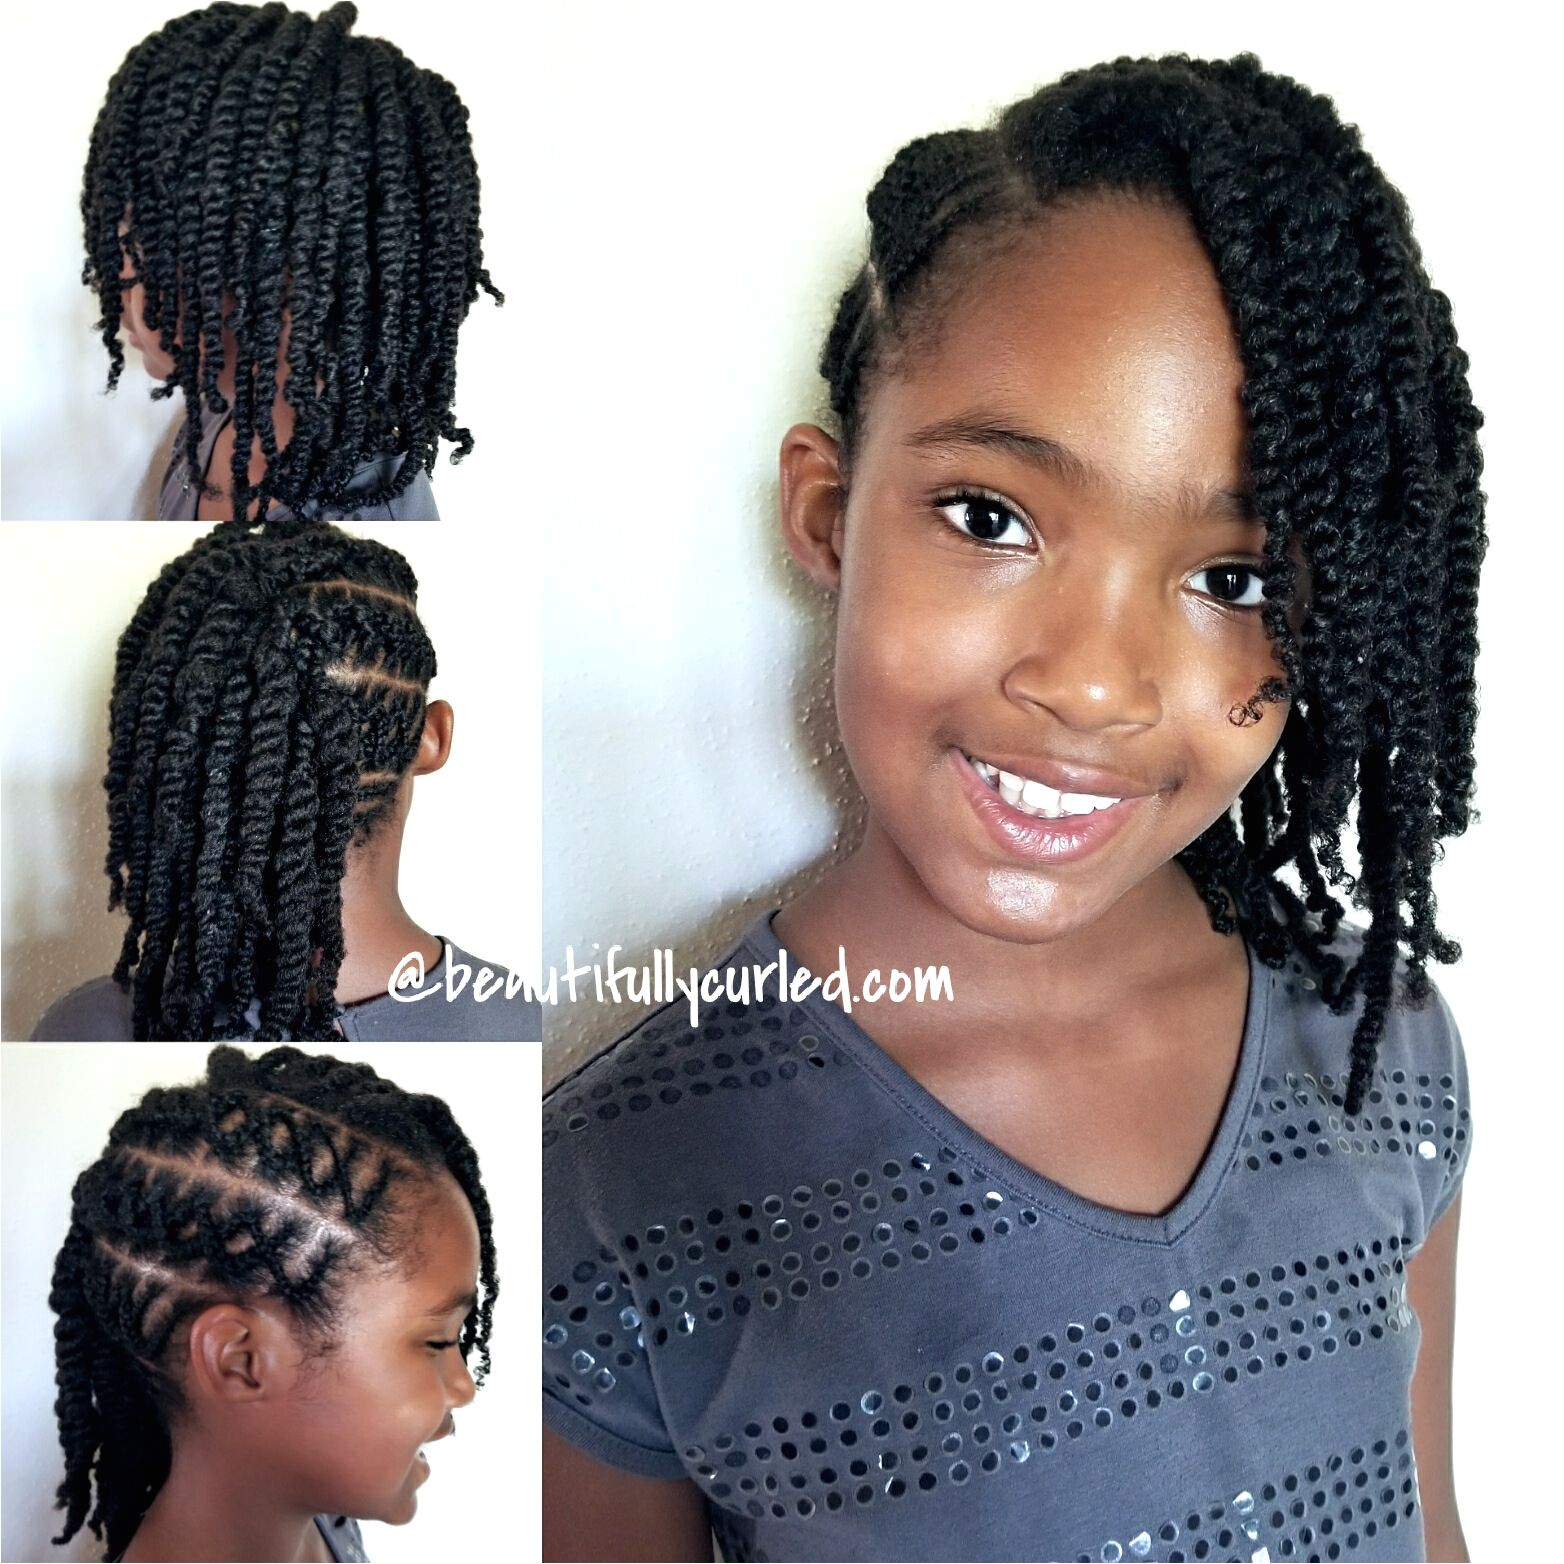 Criss Cross Cornrow Braids with Side Twists First Attempt naturalhair cornrows protectivestyles beautifullycurled